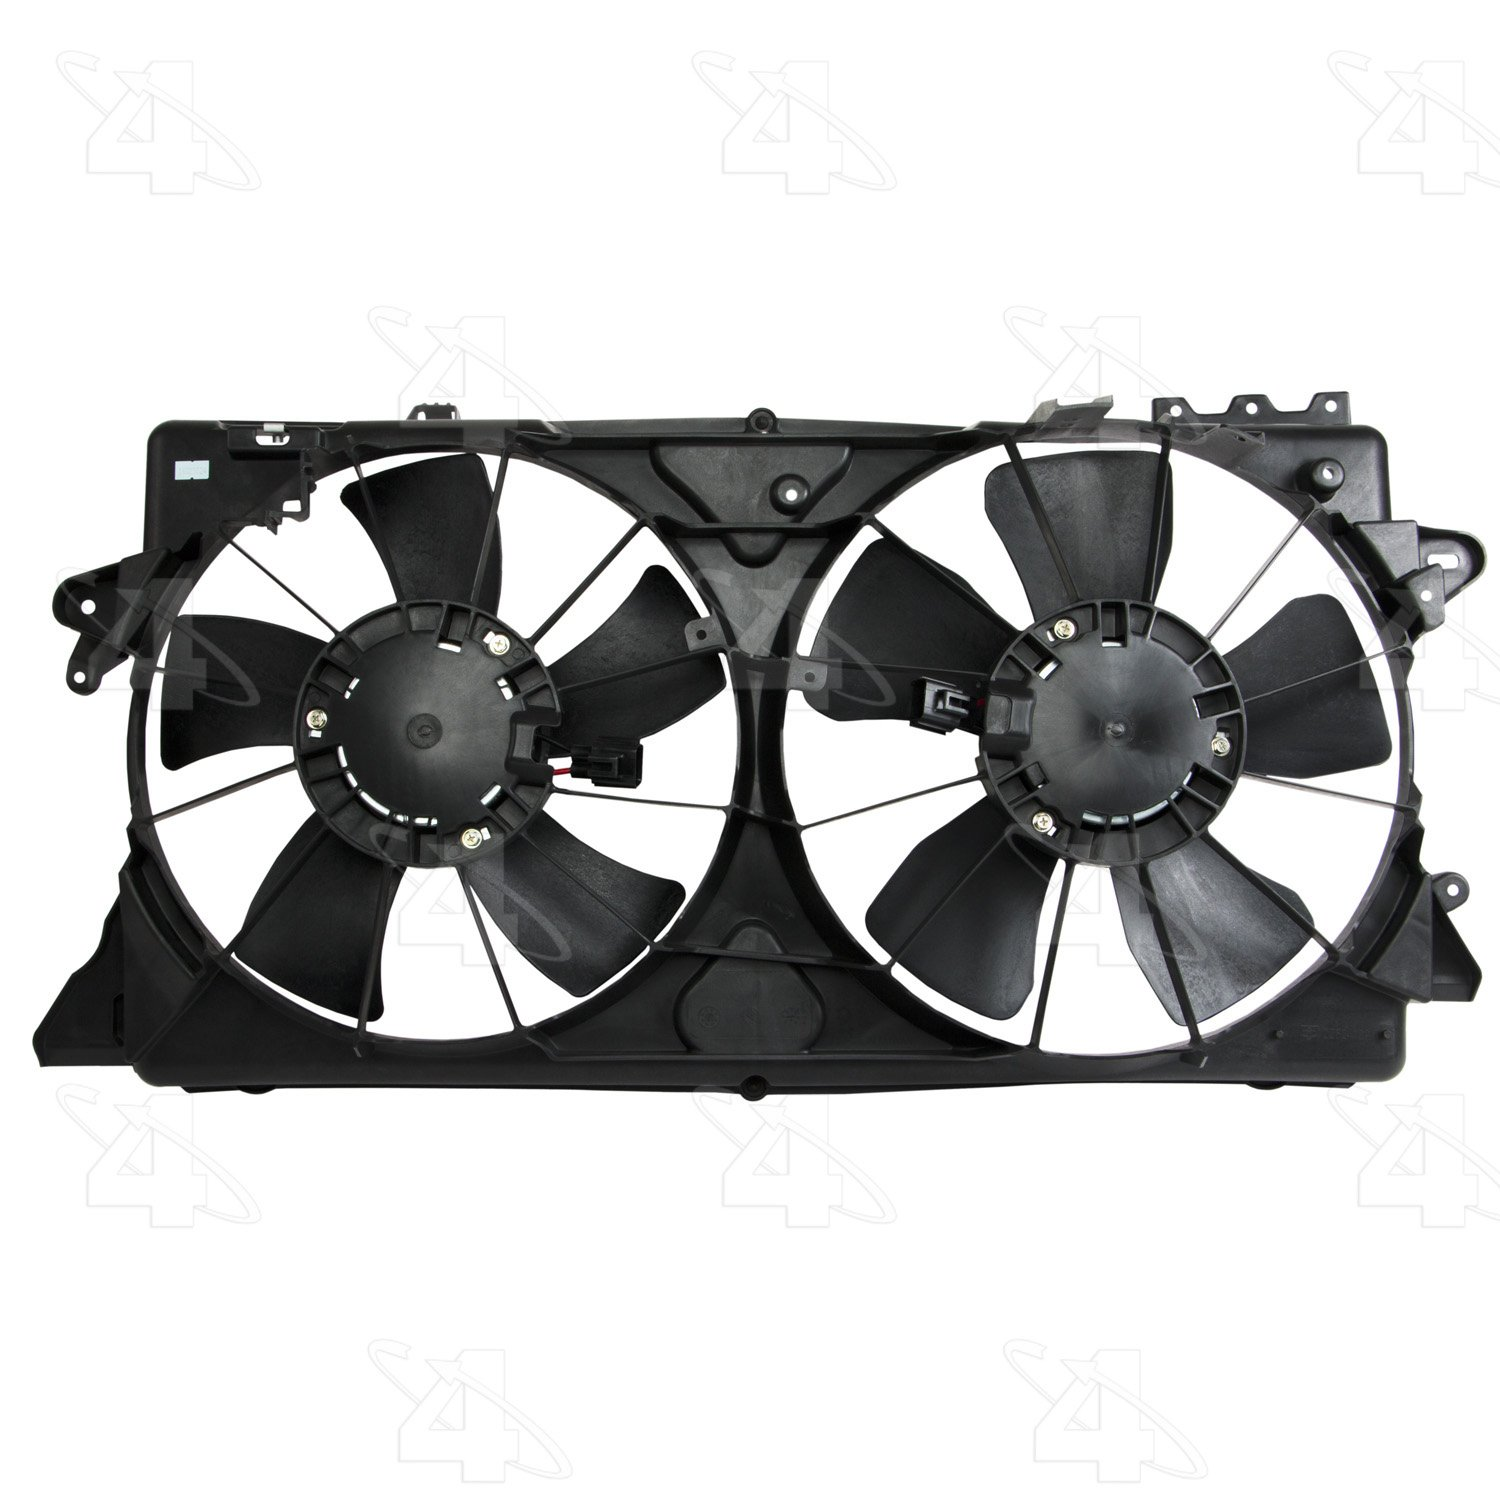 hight resolution of  2009 nissan versa engine cooling fan assembly fs 76201